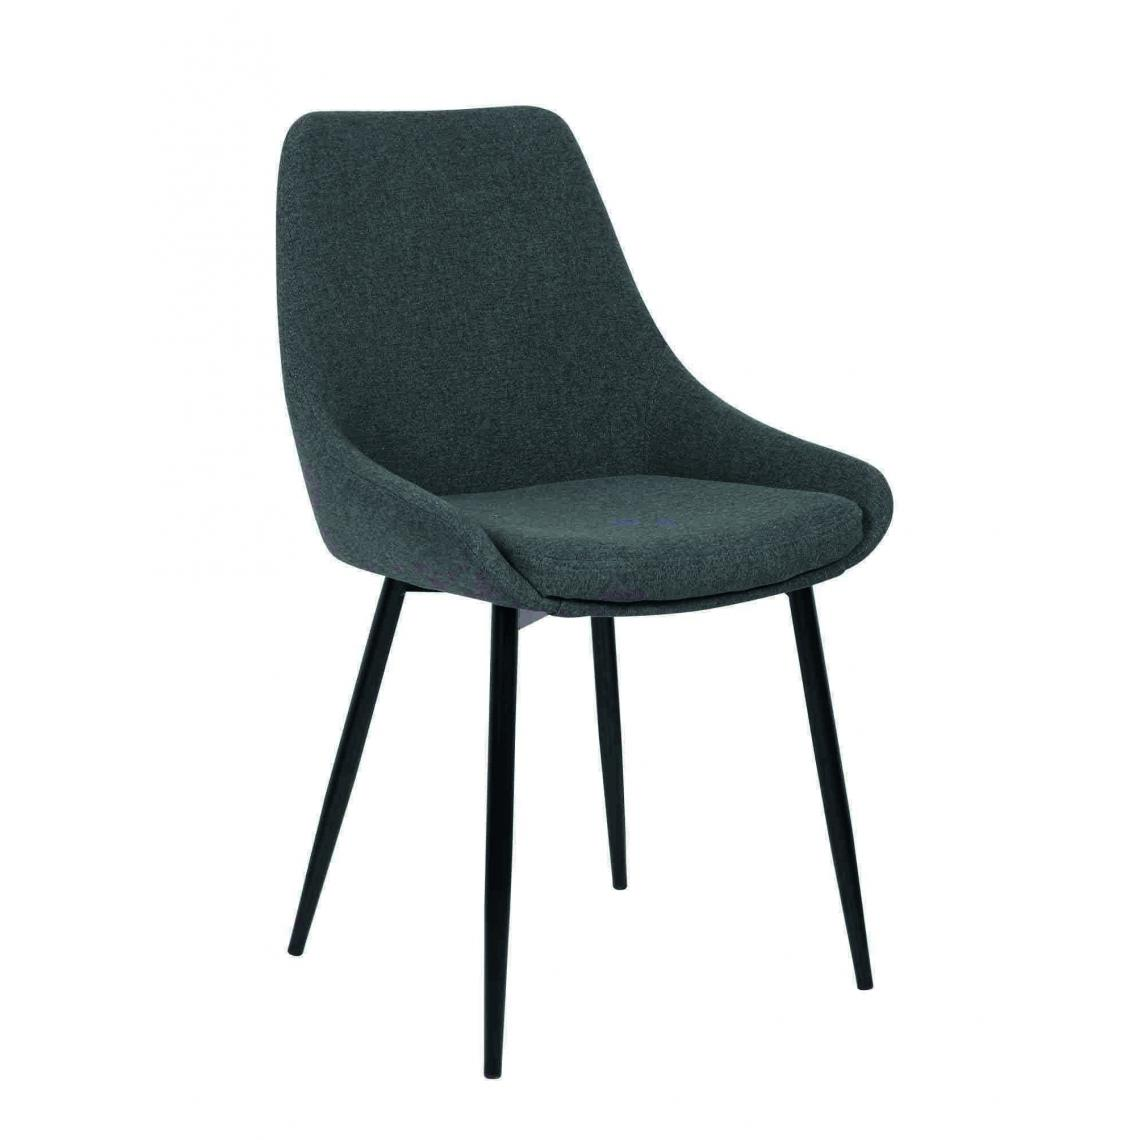 chaise tissu gris fonce indo